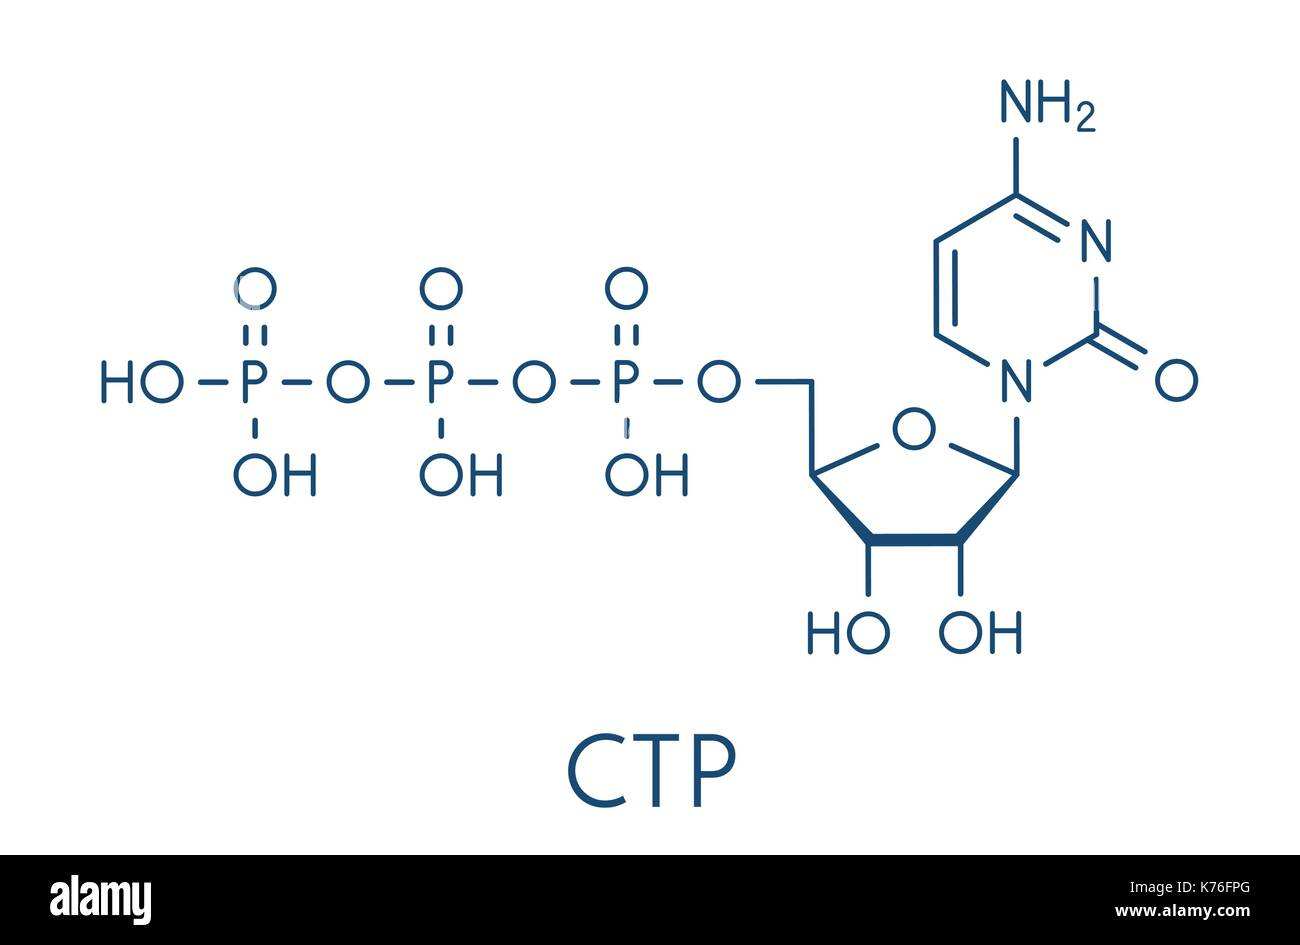 Cytidine triphosphate (CTP) RNA building block molecule. Also functions as cofactor to some enzymes. Skeletal formula. Stock Vector